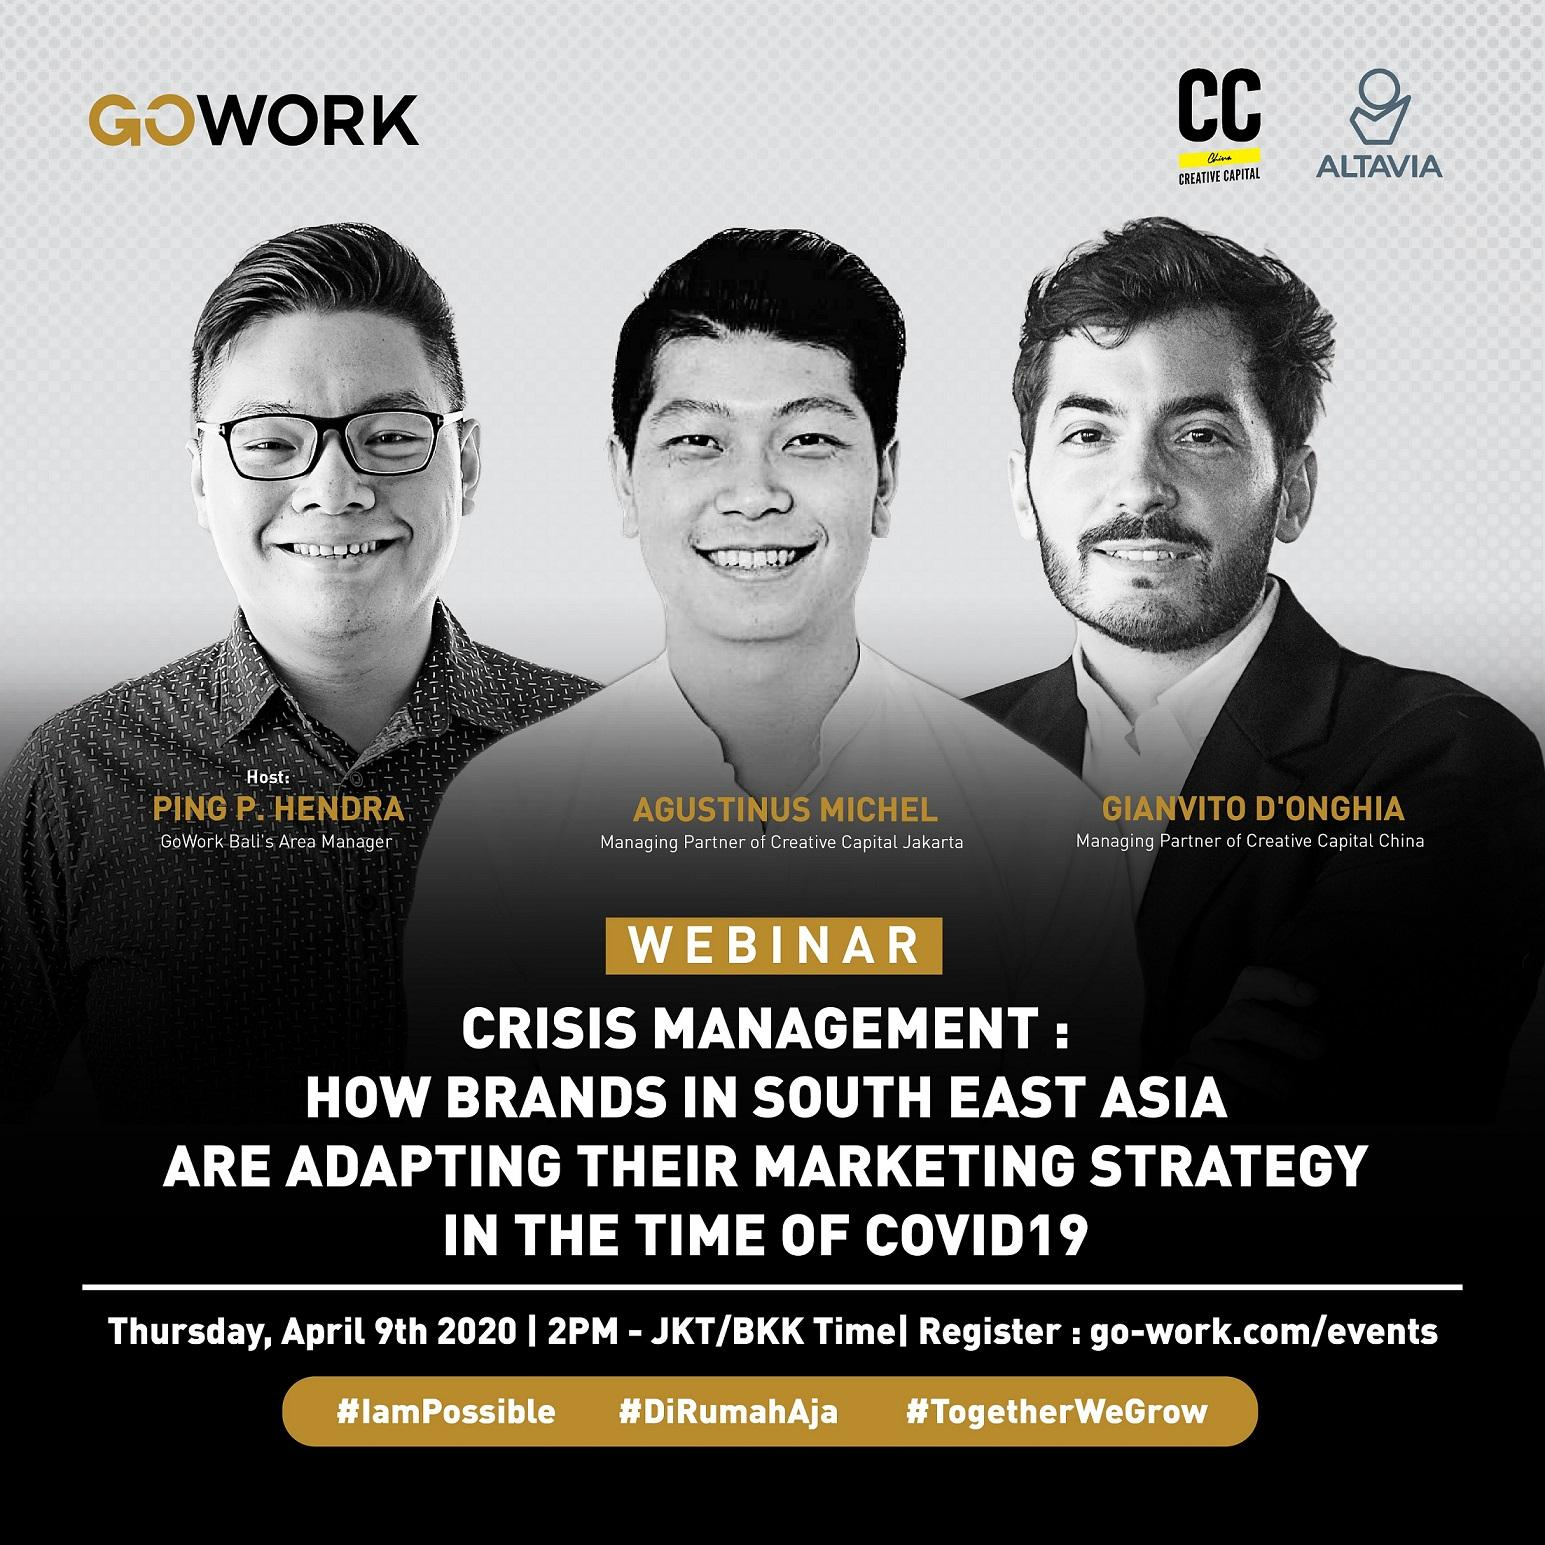 Crisis Management: How Brands in South East Asia are Adapting Their Marketing Strategy in the Time of Covid-19